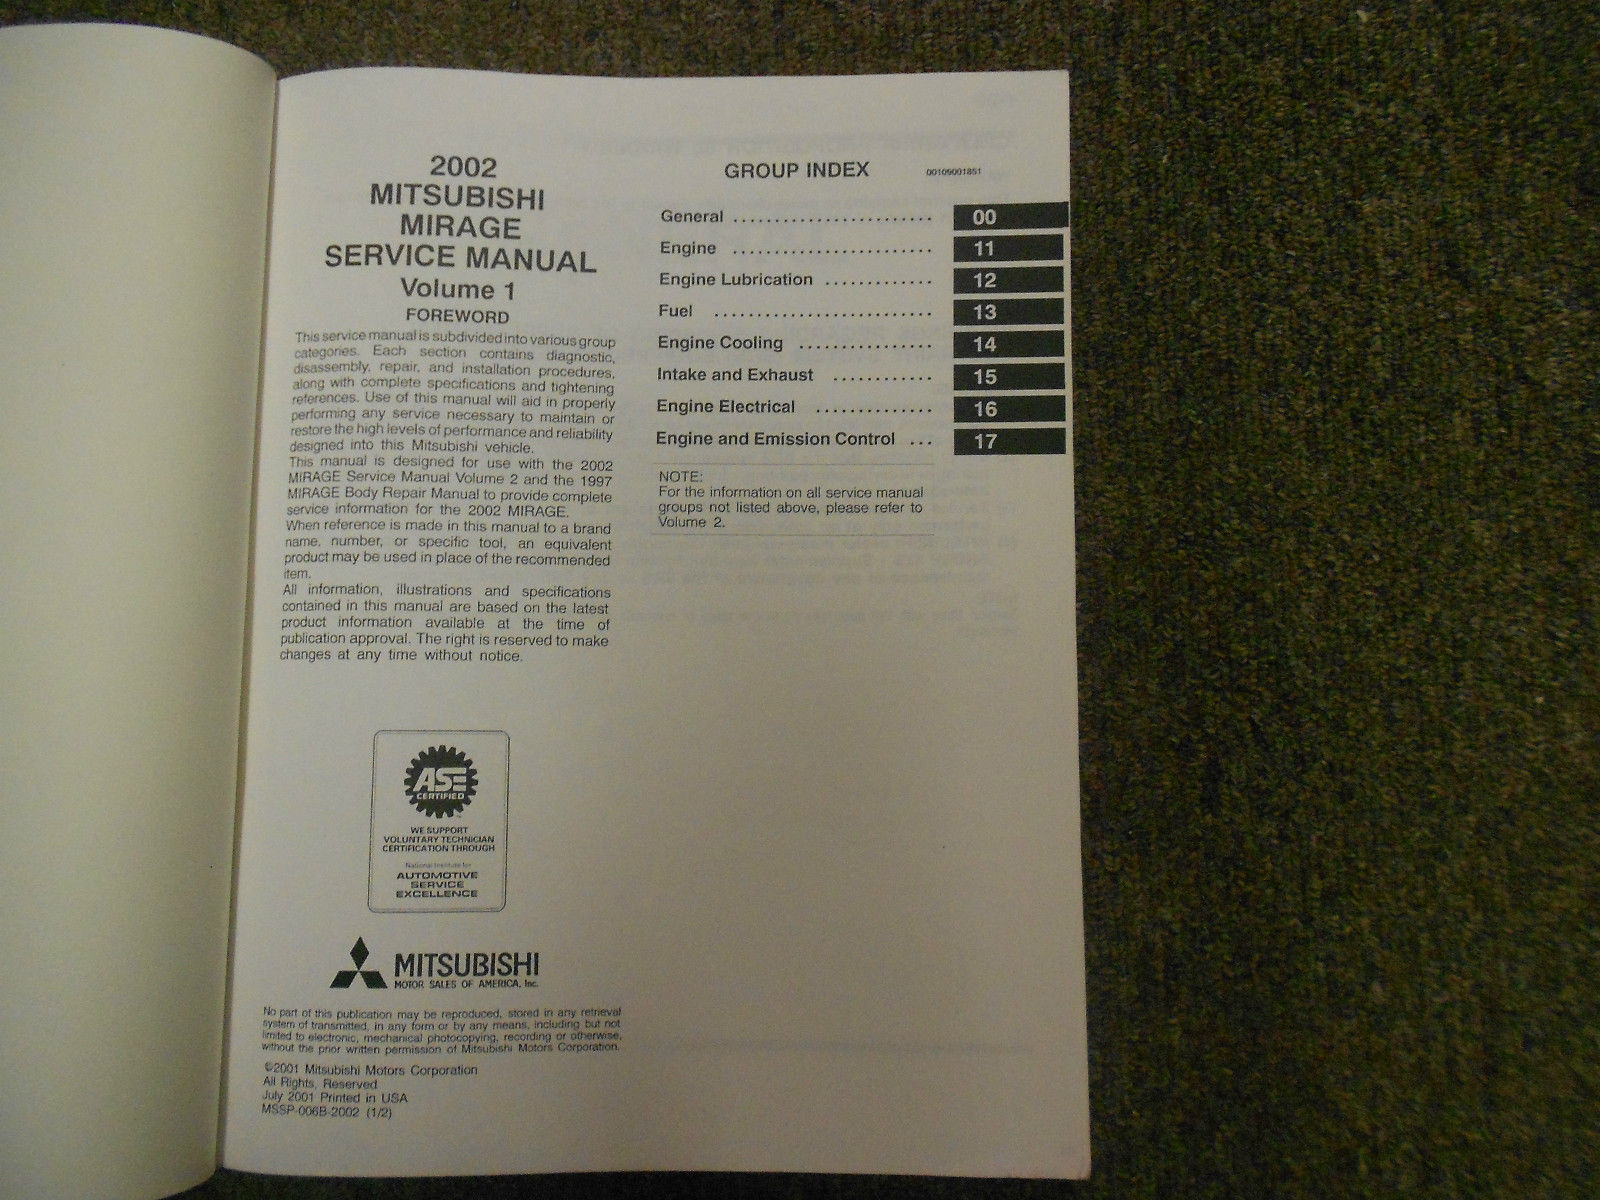 2002 MITSUBISHI Mirage Service Repair Shop Manual VOL 1 FACTORY OEM BOOK 02